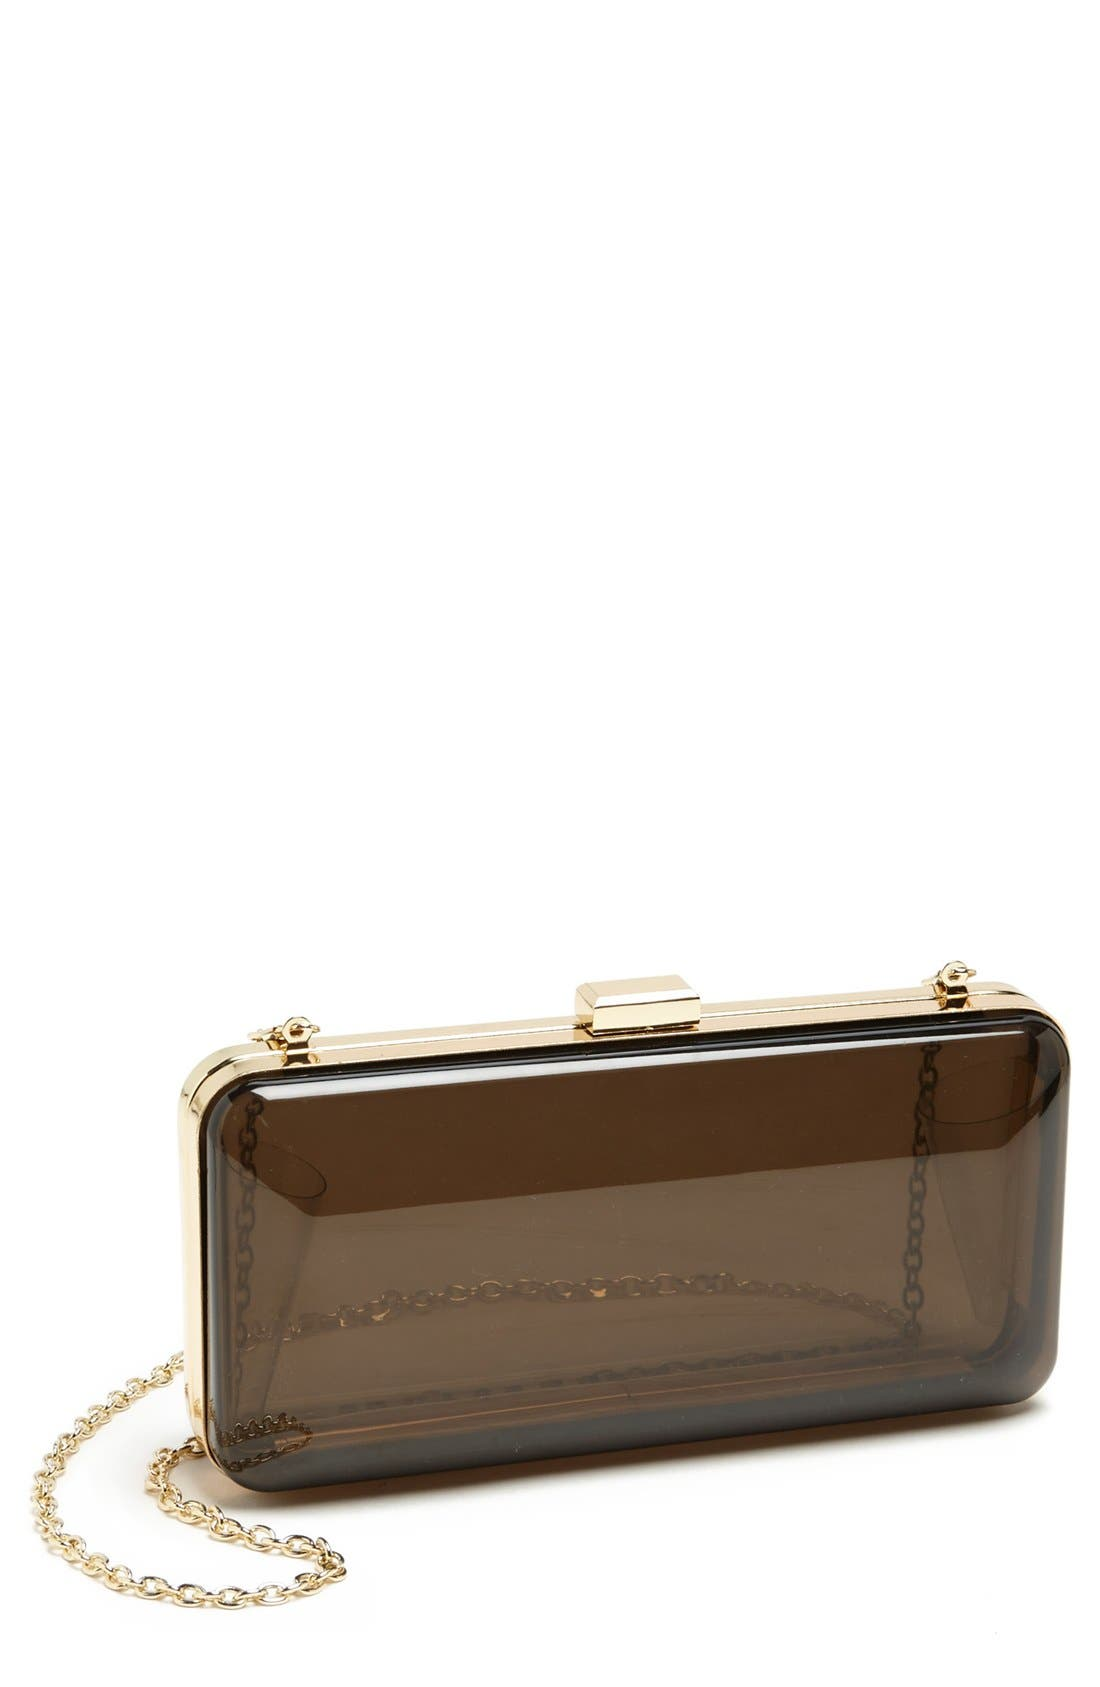 Alternate Image 1 Selected - Melie Bianco Transparent Minaudiere